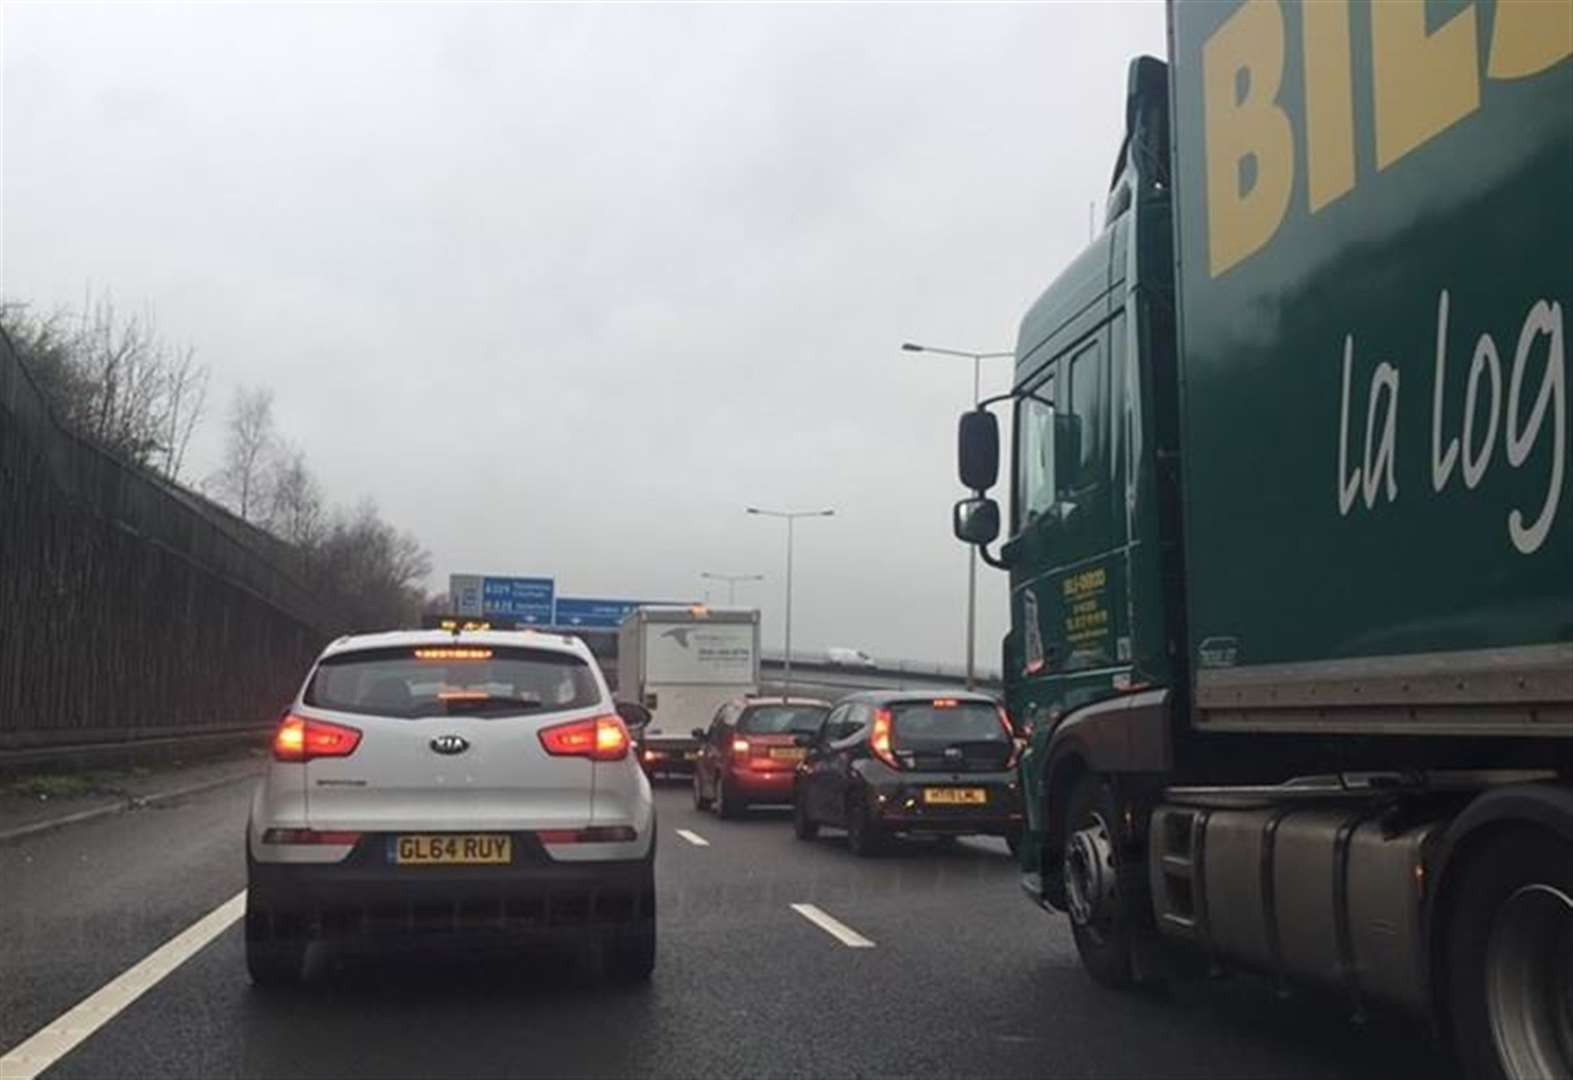 Pile-up causes M20 delays